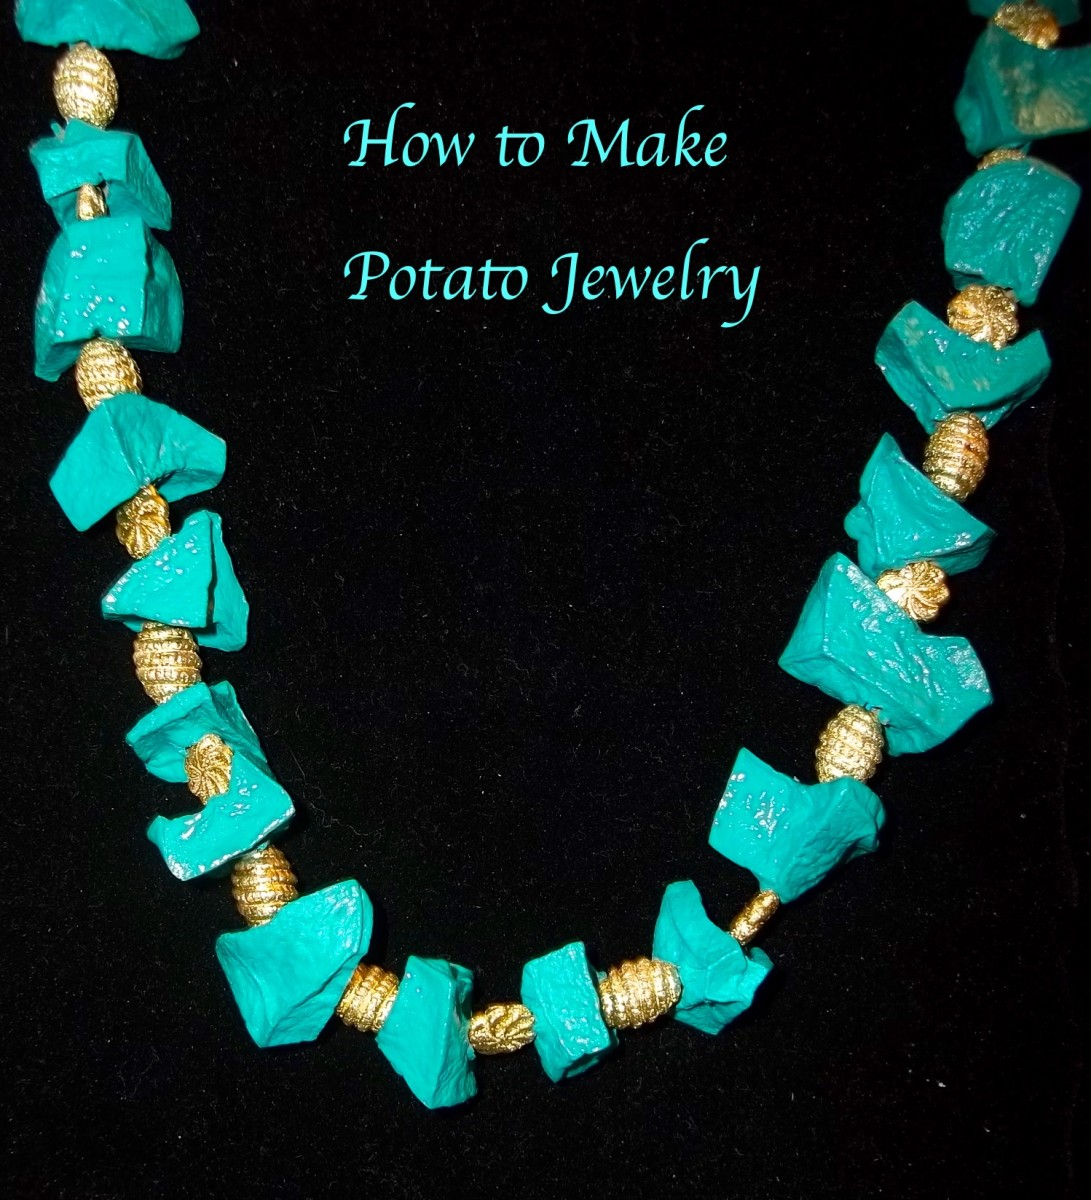 How to Make Potato Jewelry.  No it's not turquoise, it's potatoes!